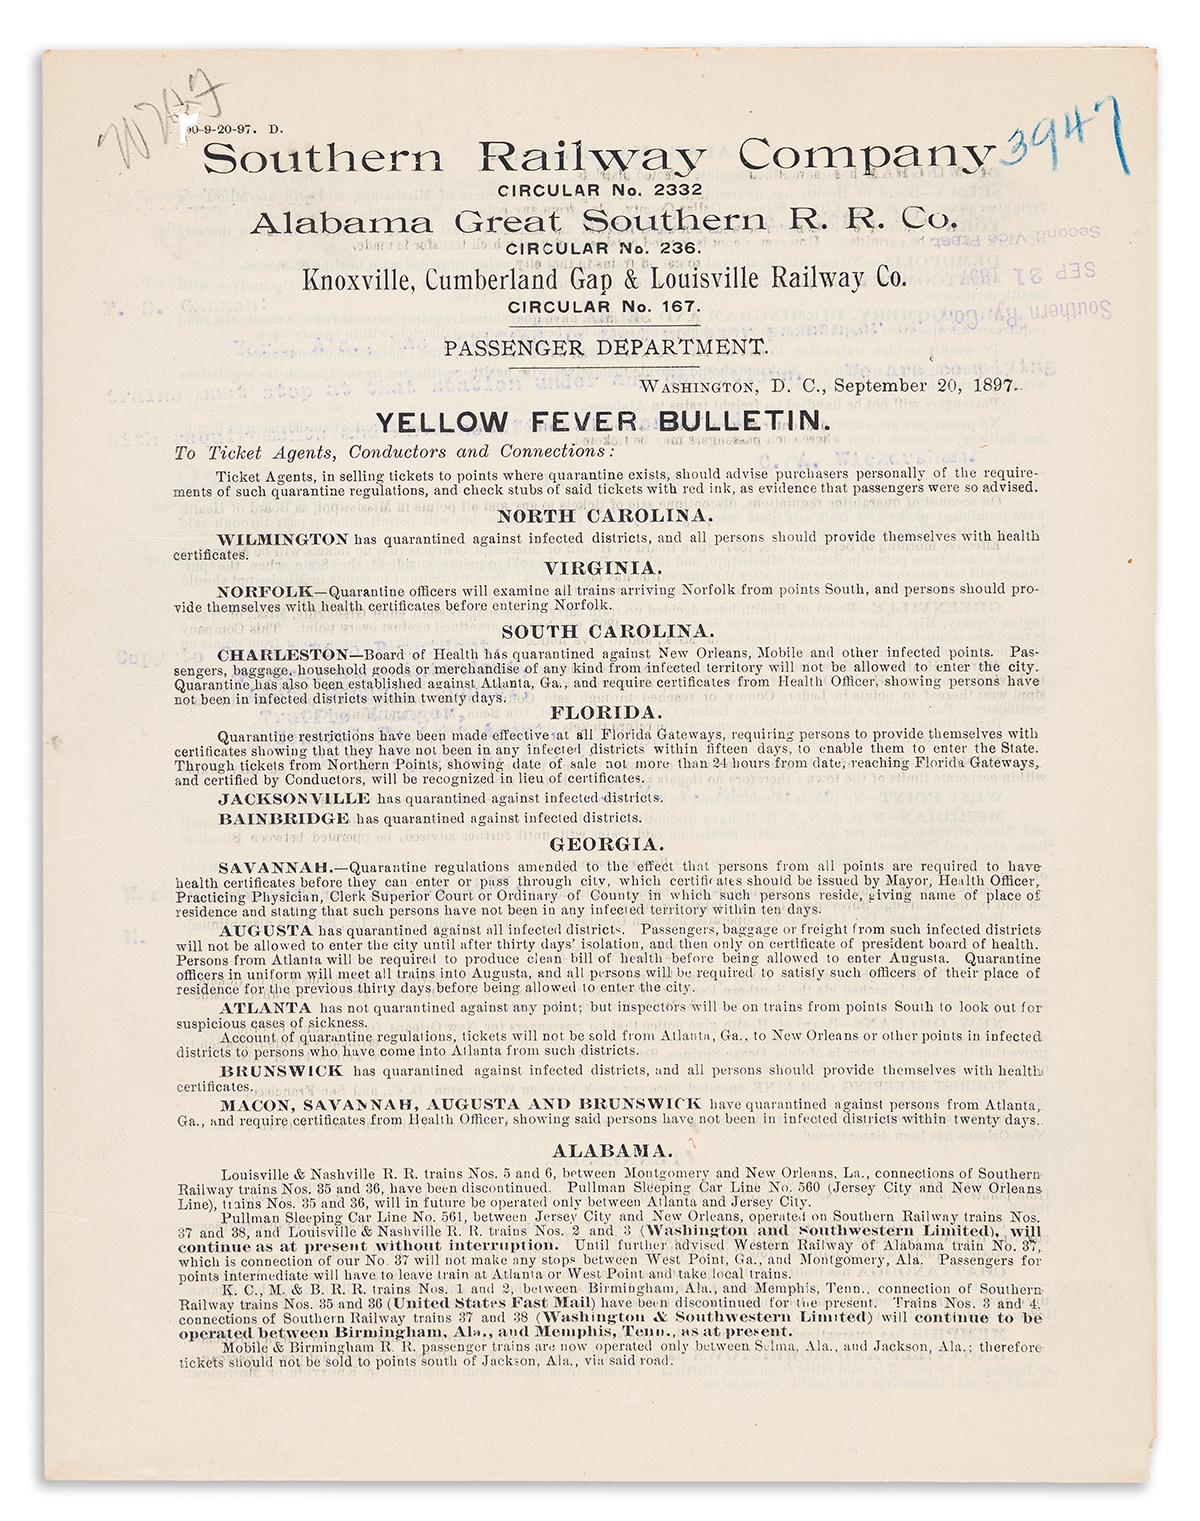 (MEDICINE.) Large group of railroad Yellow Fever Bulletins detailing quarantine conditions in southern cities.